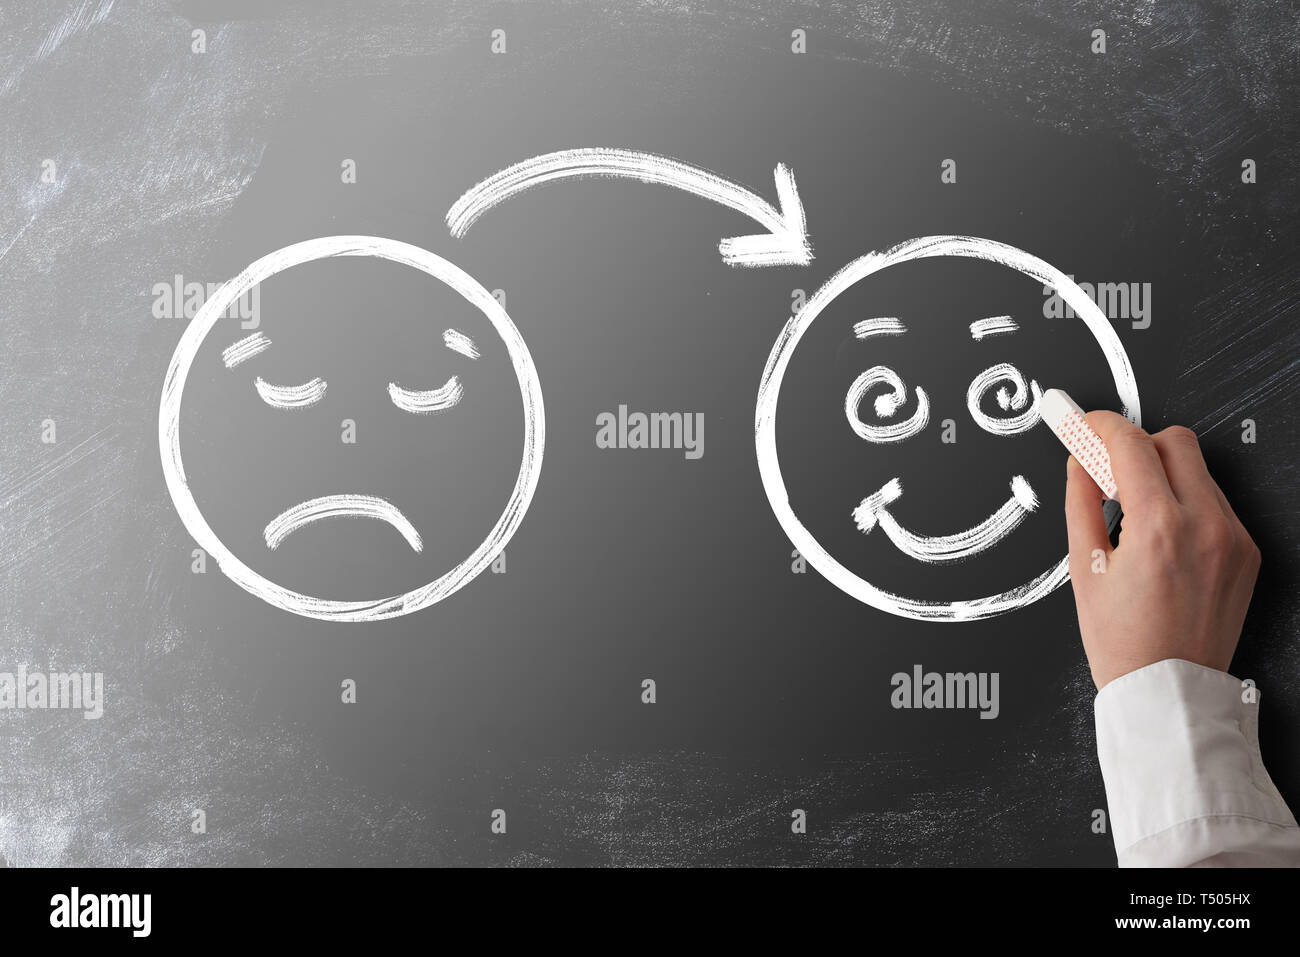 client or customer satisfaction concept with chalk drawing of sad face turning into smiling face on blackboard - Stock Image